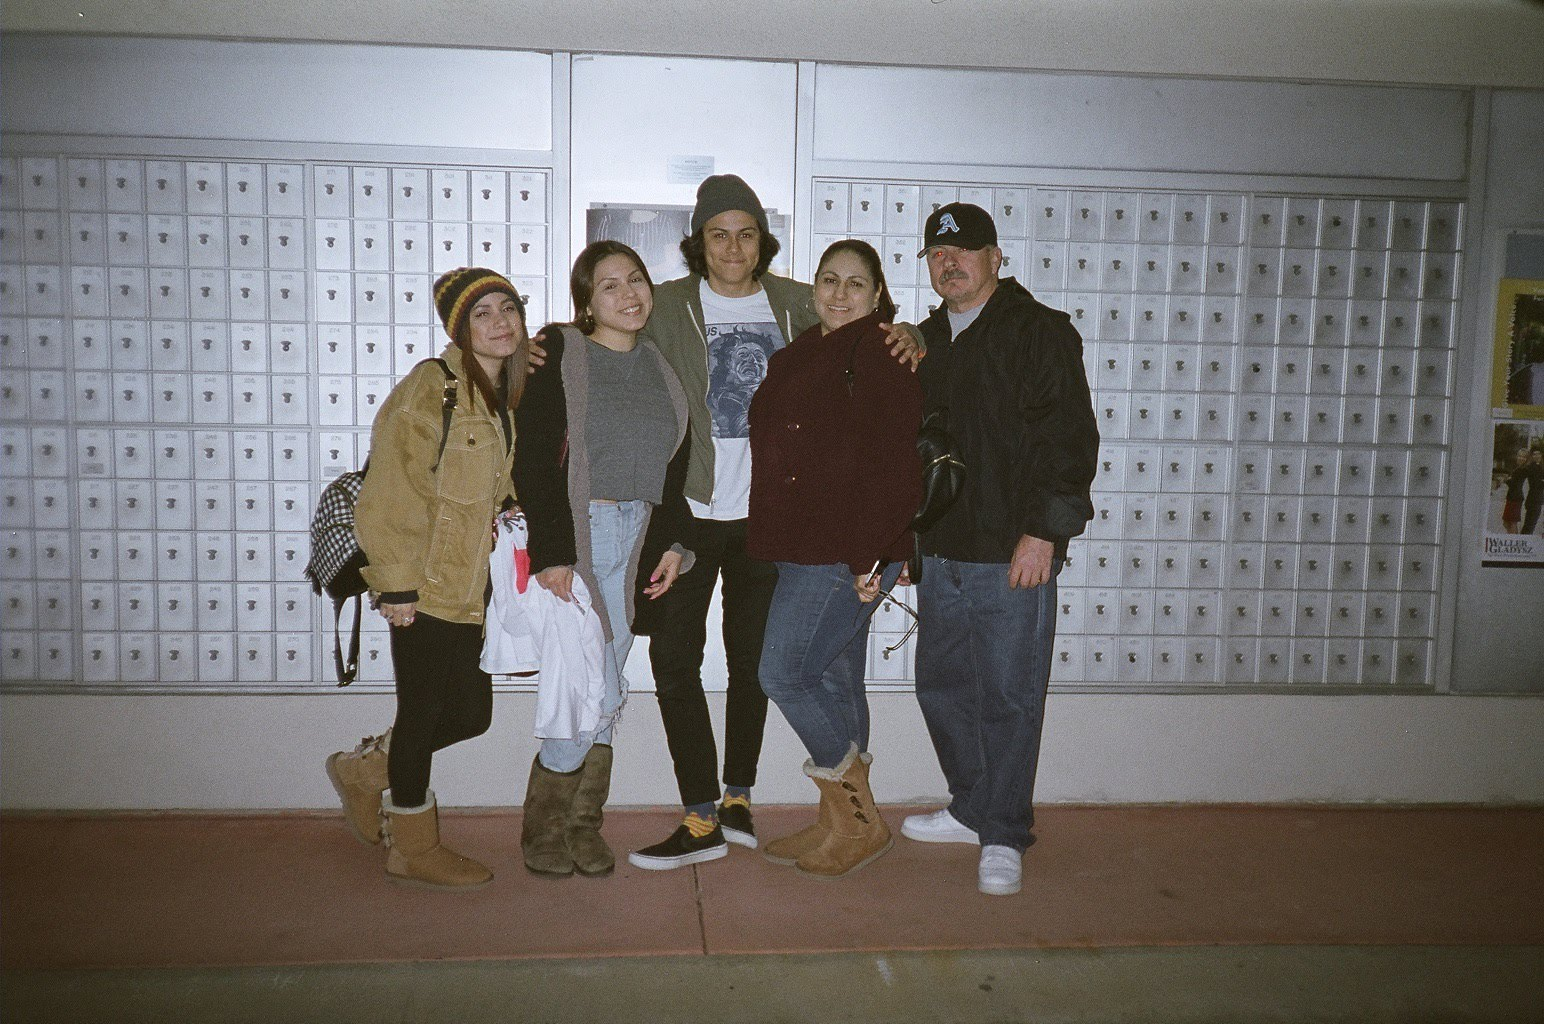 Tony's family after one of his shows